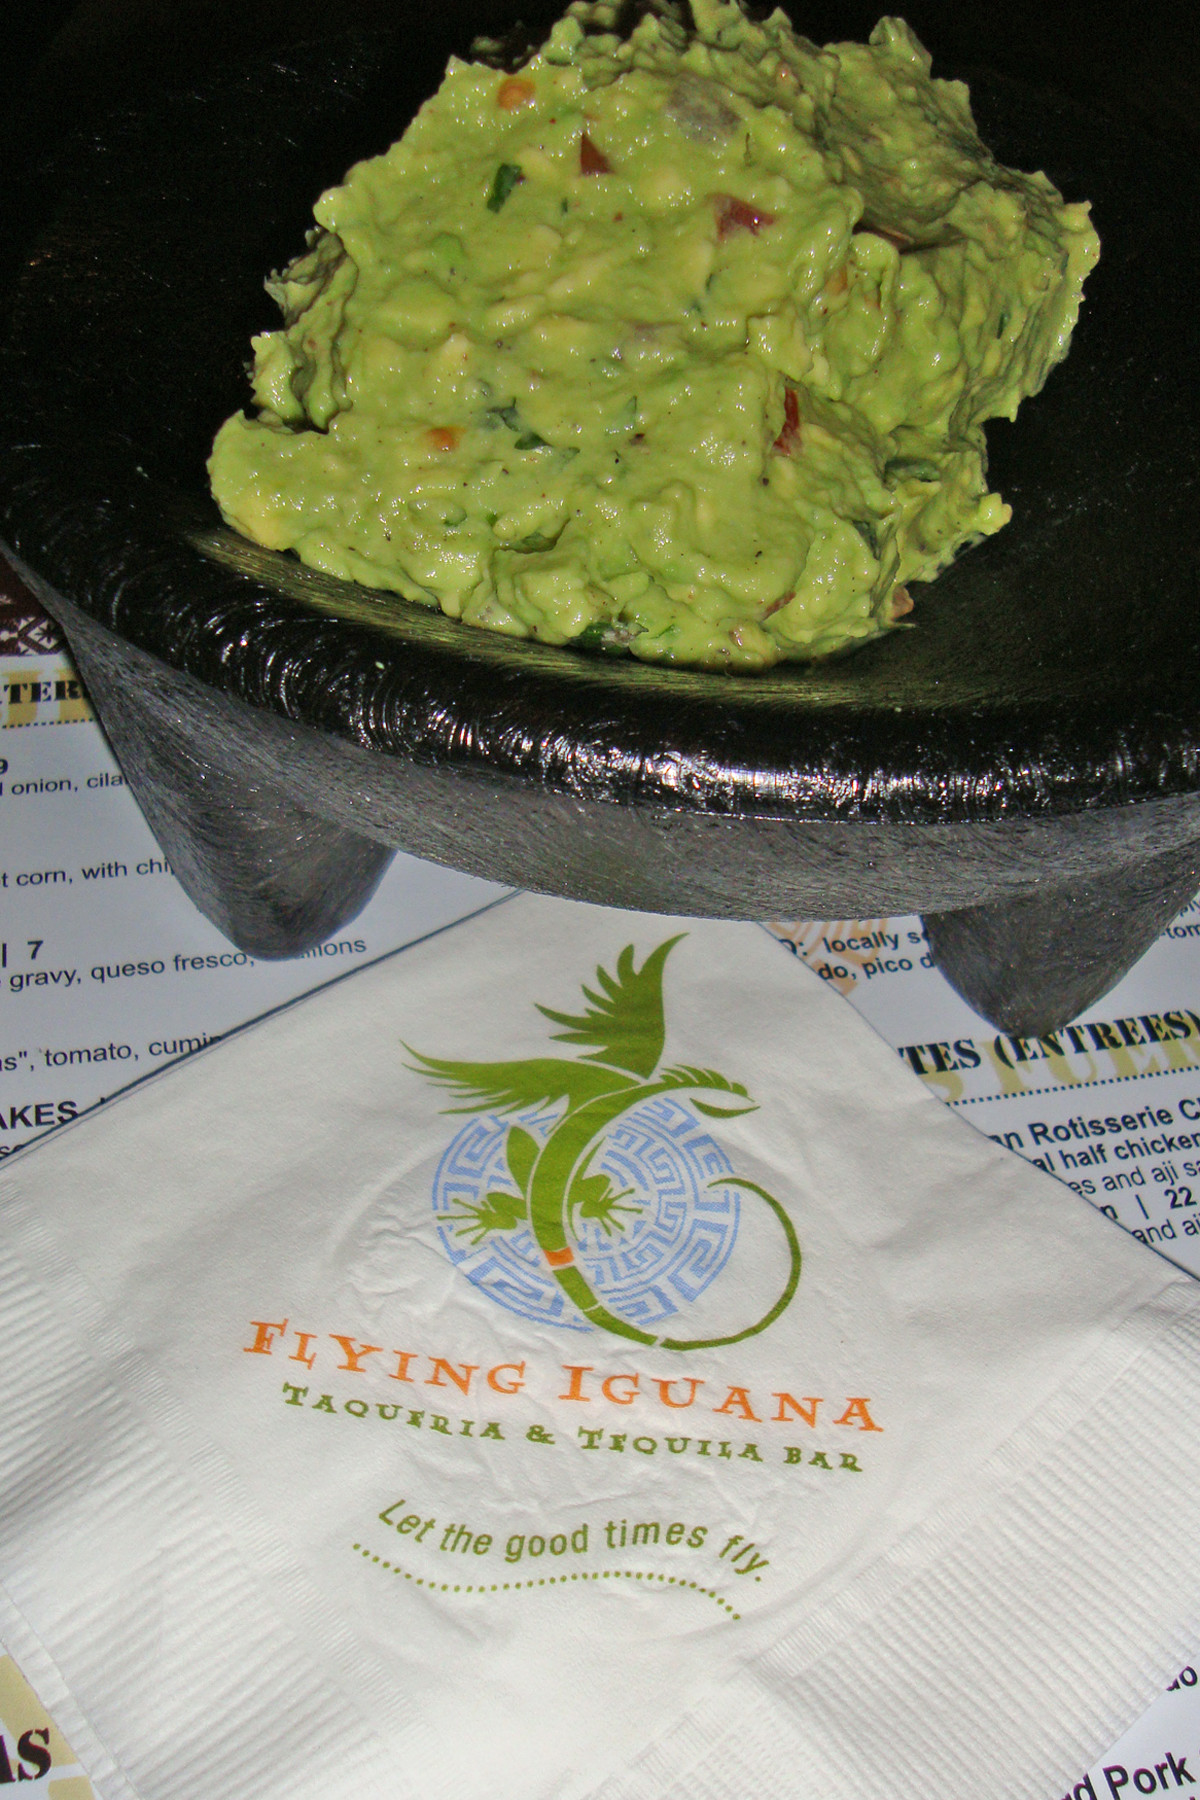 Made tableside, Flying Iguana's creamy, chunky guacamole contains ample flecks of tomato, onion and cilantro.